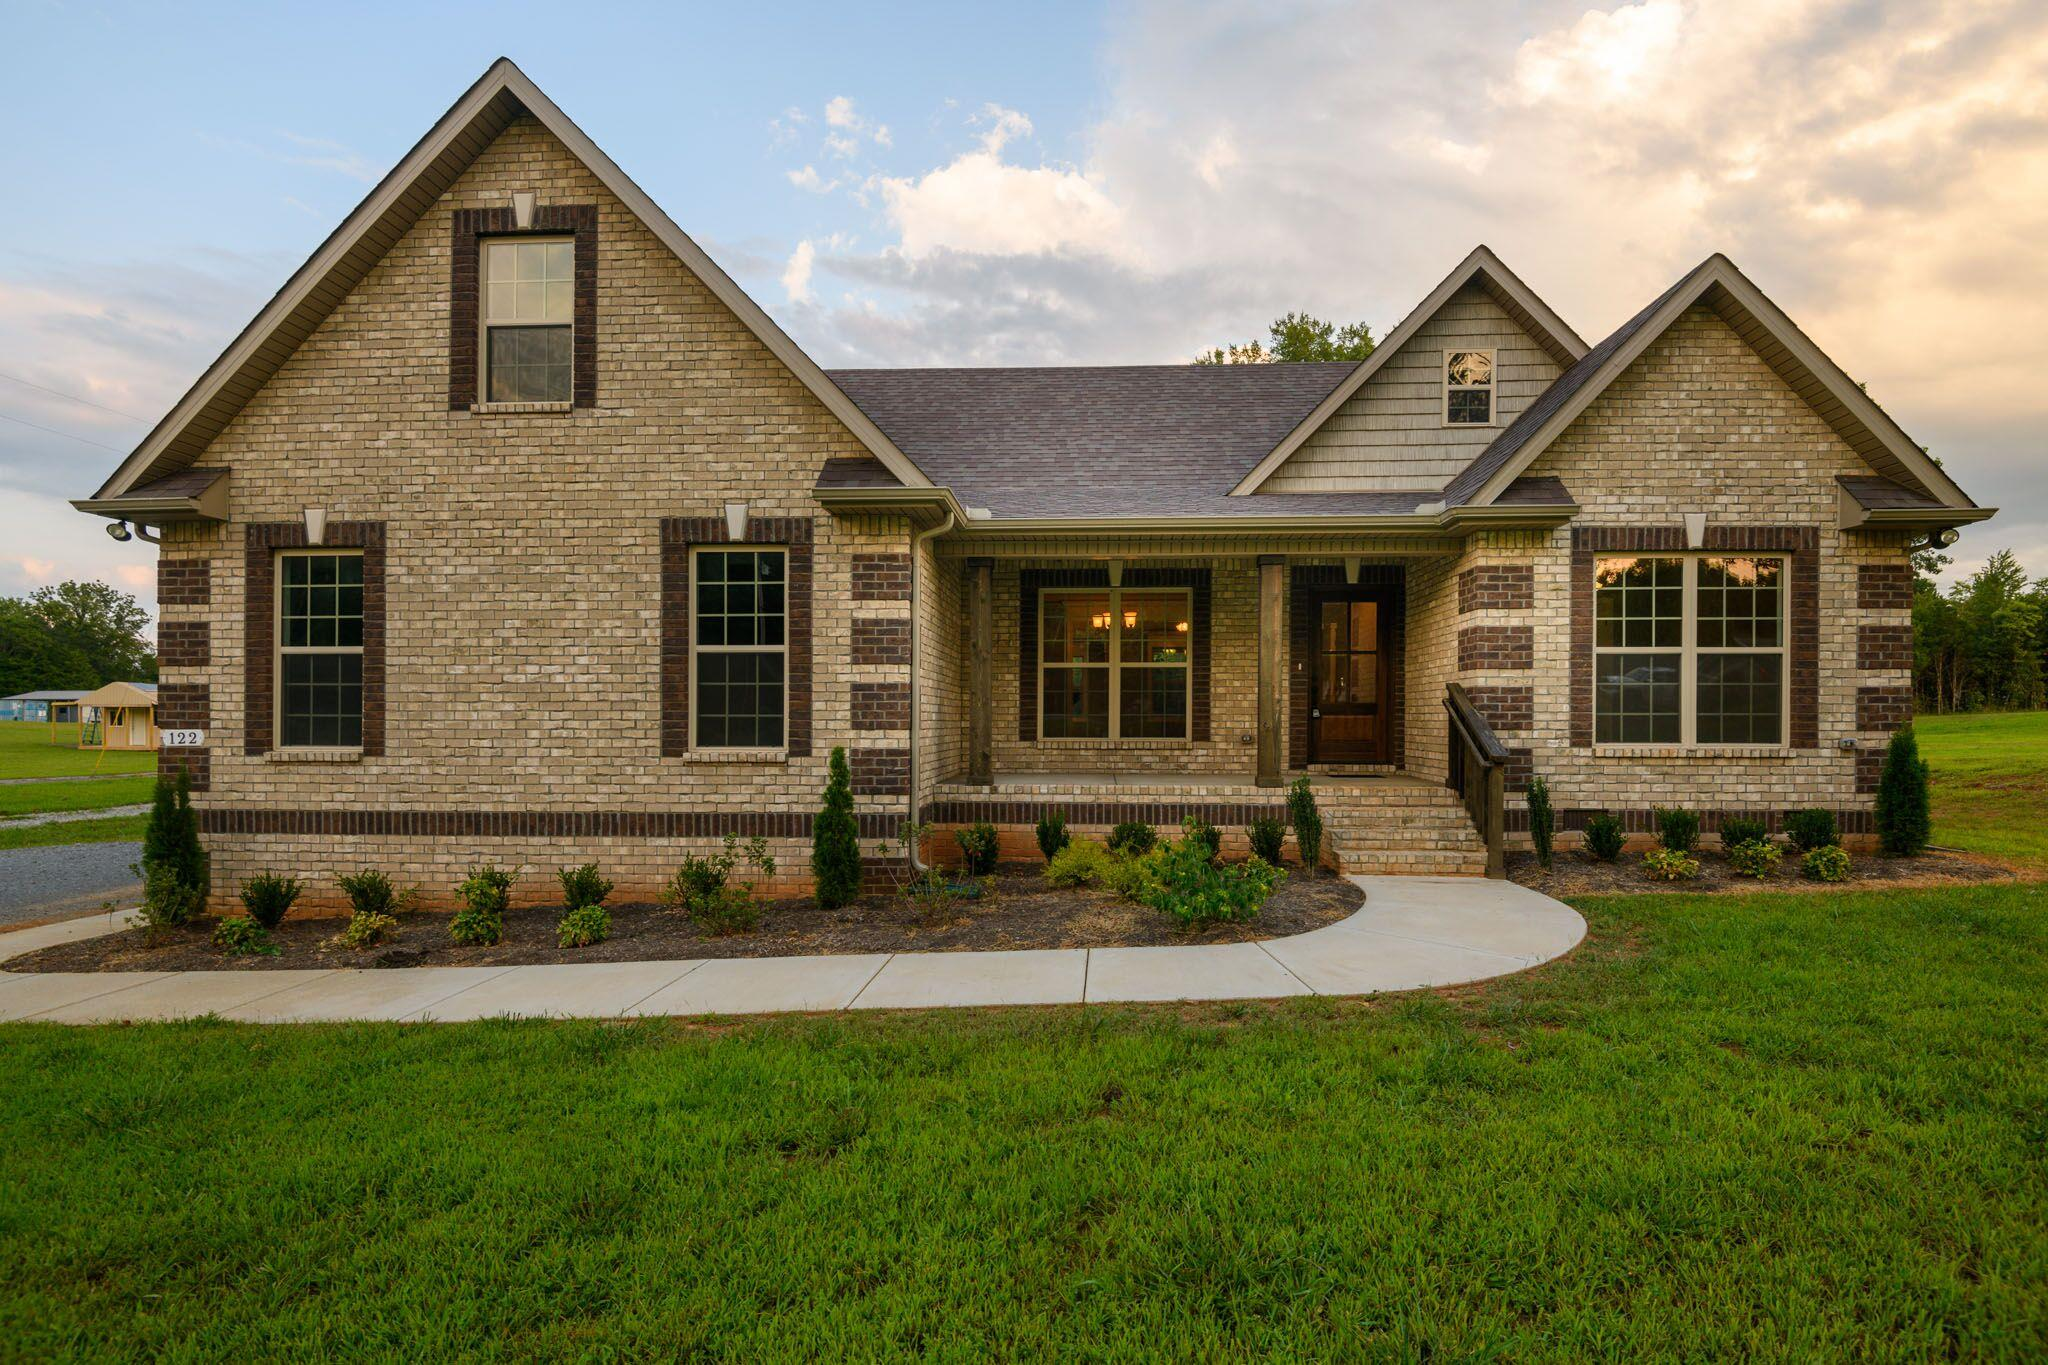 122 Pleasant Way, Shelbyville, TN 37160 - Shelbyville, TN real estate listing